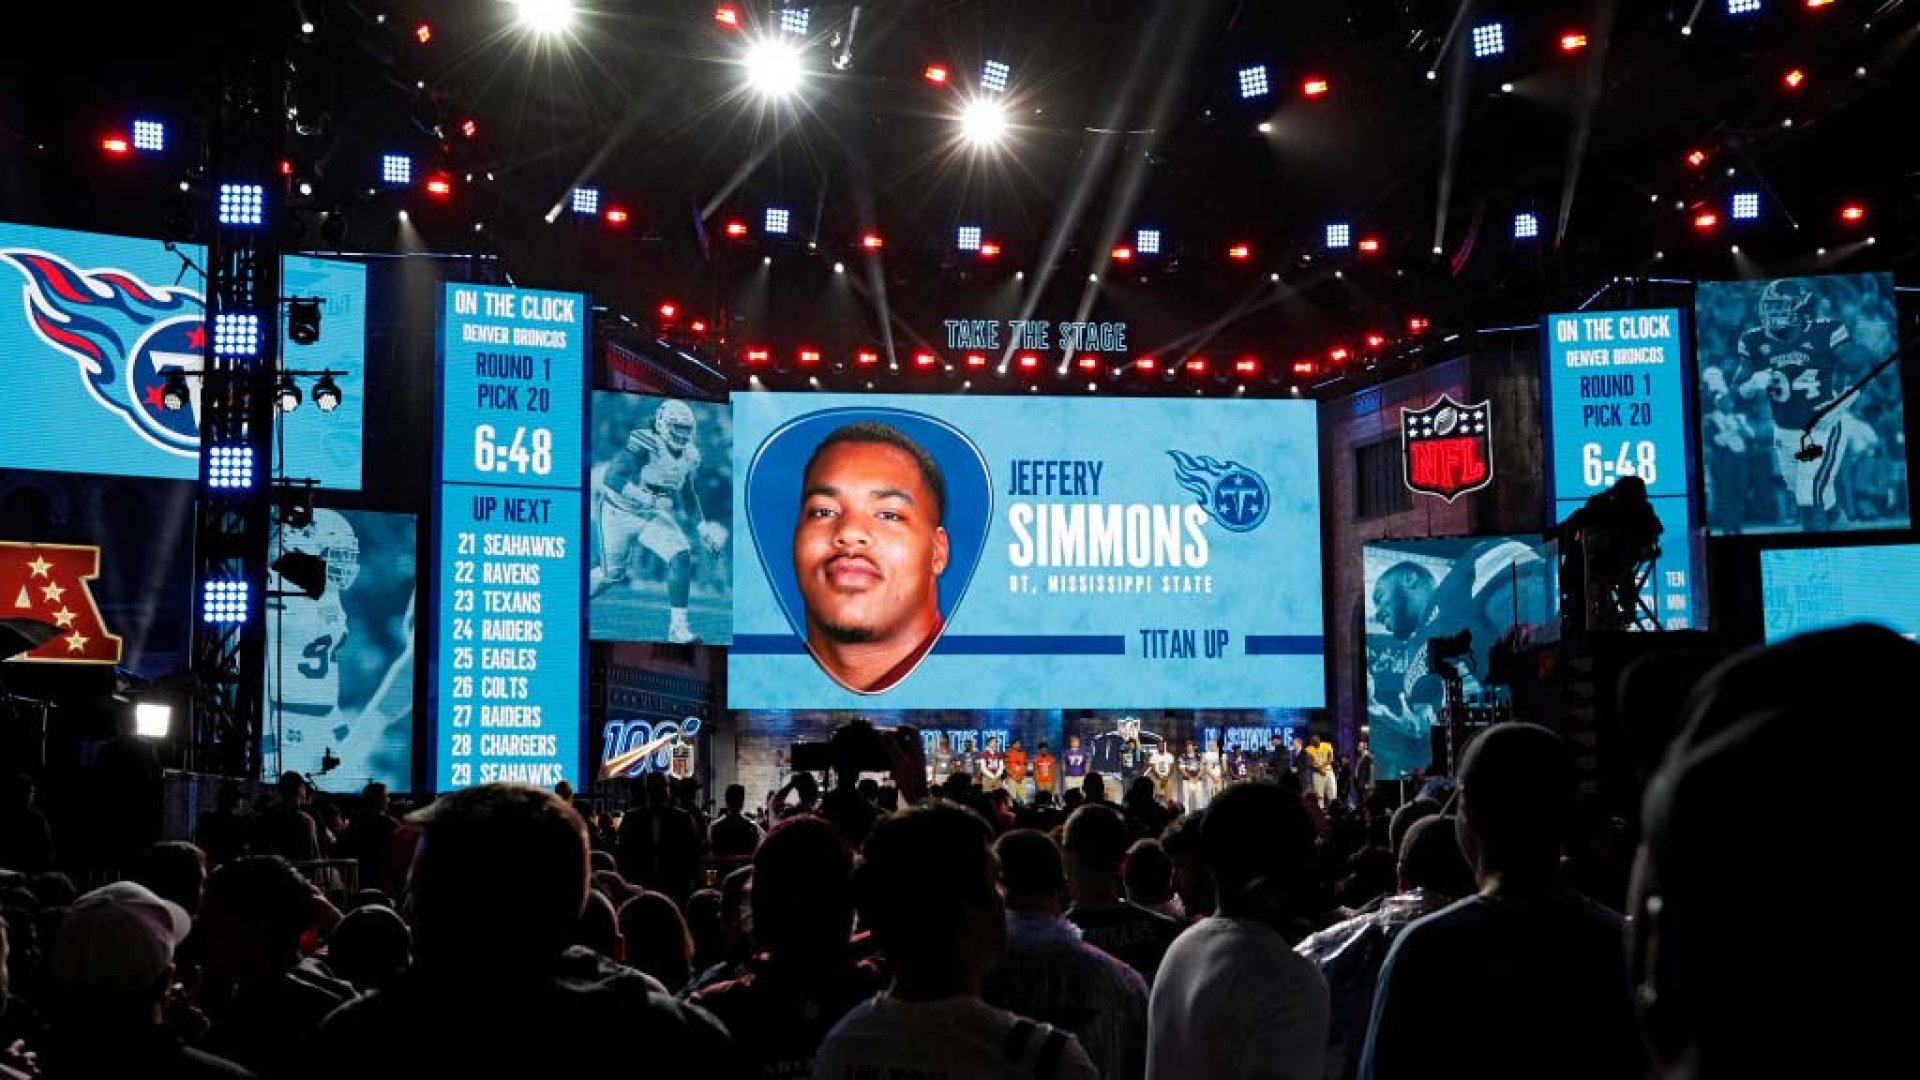 Jeffery Simmons of Mississippi State is announced as the first-round pick of the Tennessee Titans during the NFL Draft on April 25, 2019, in Nashville.